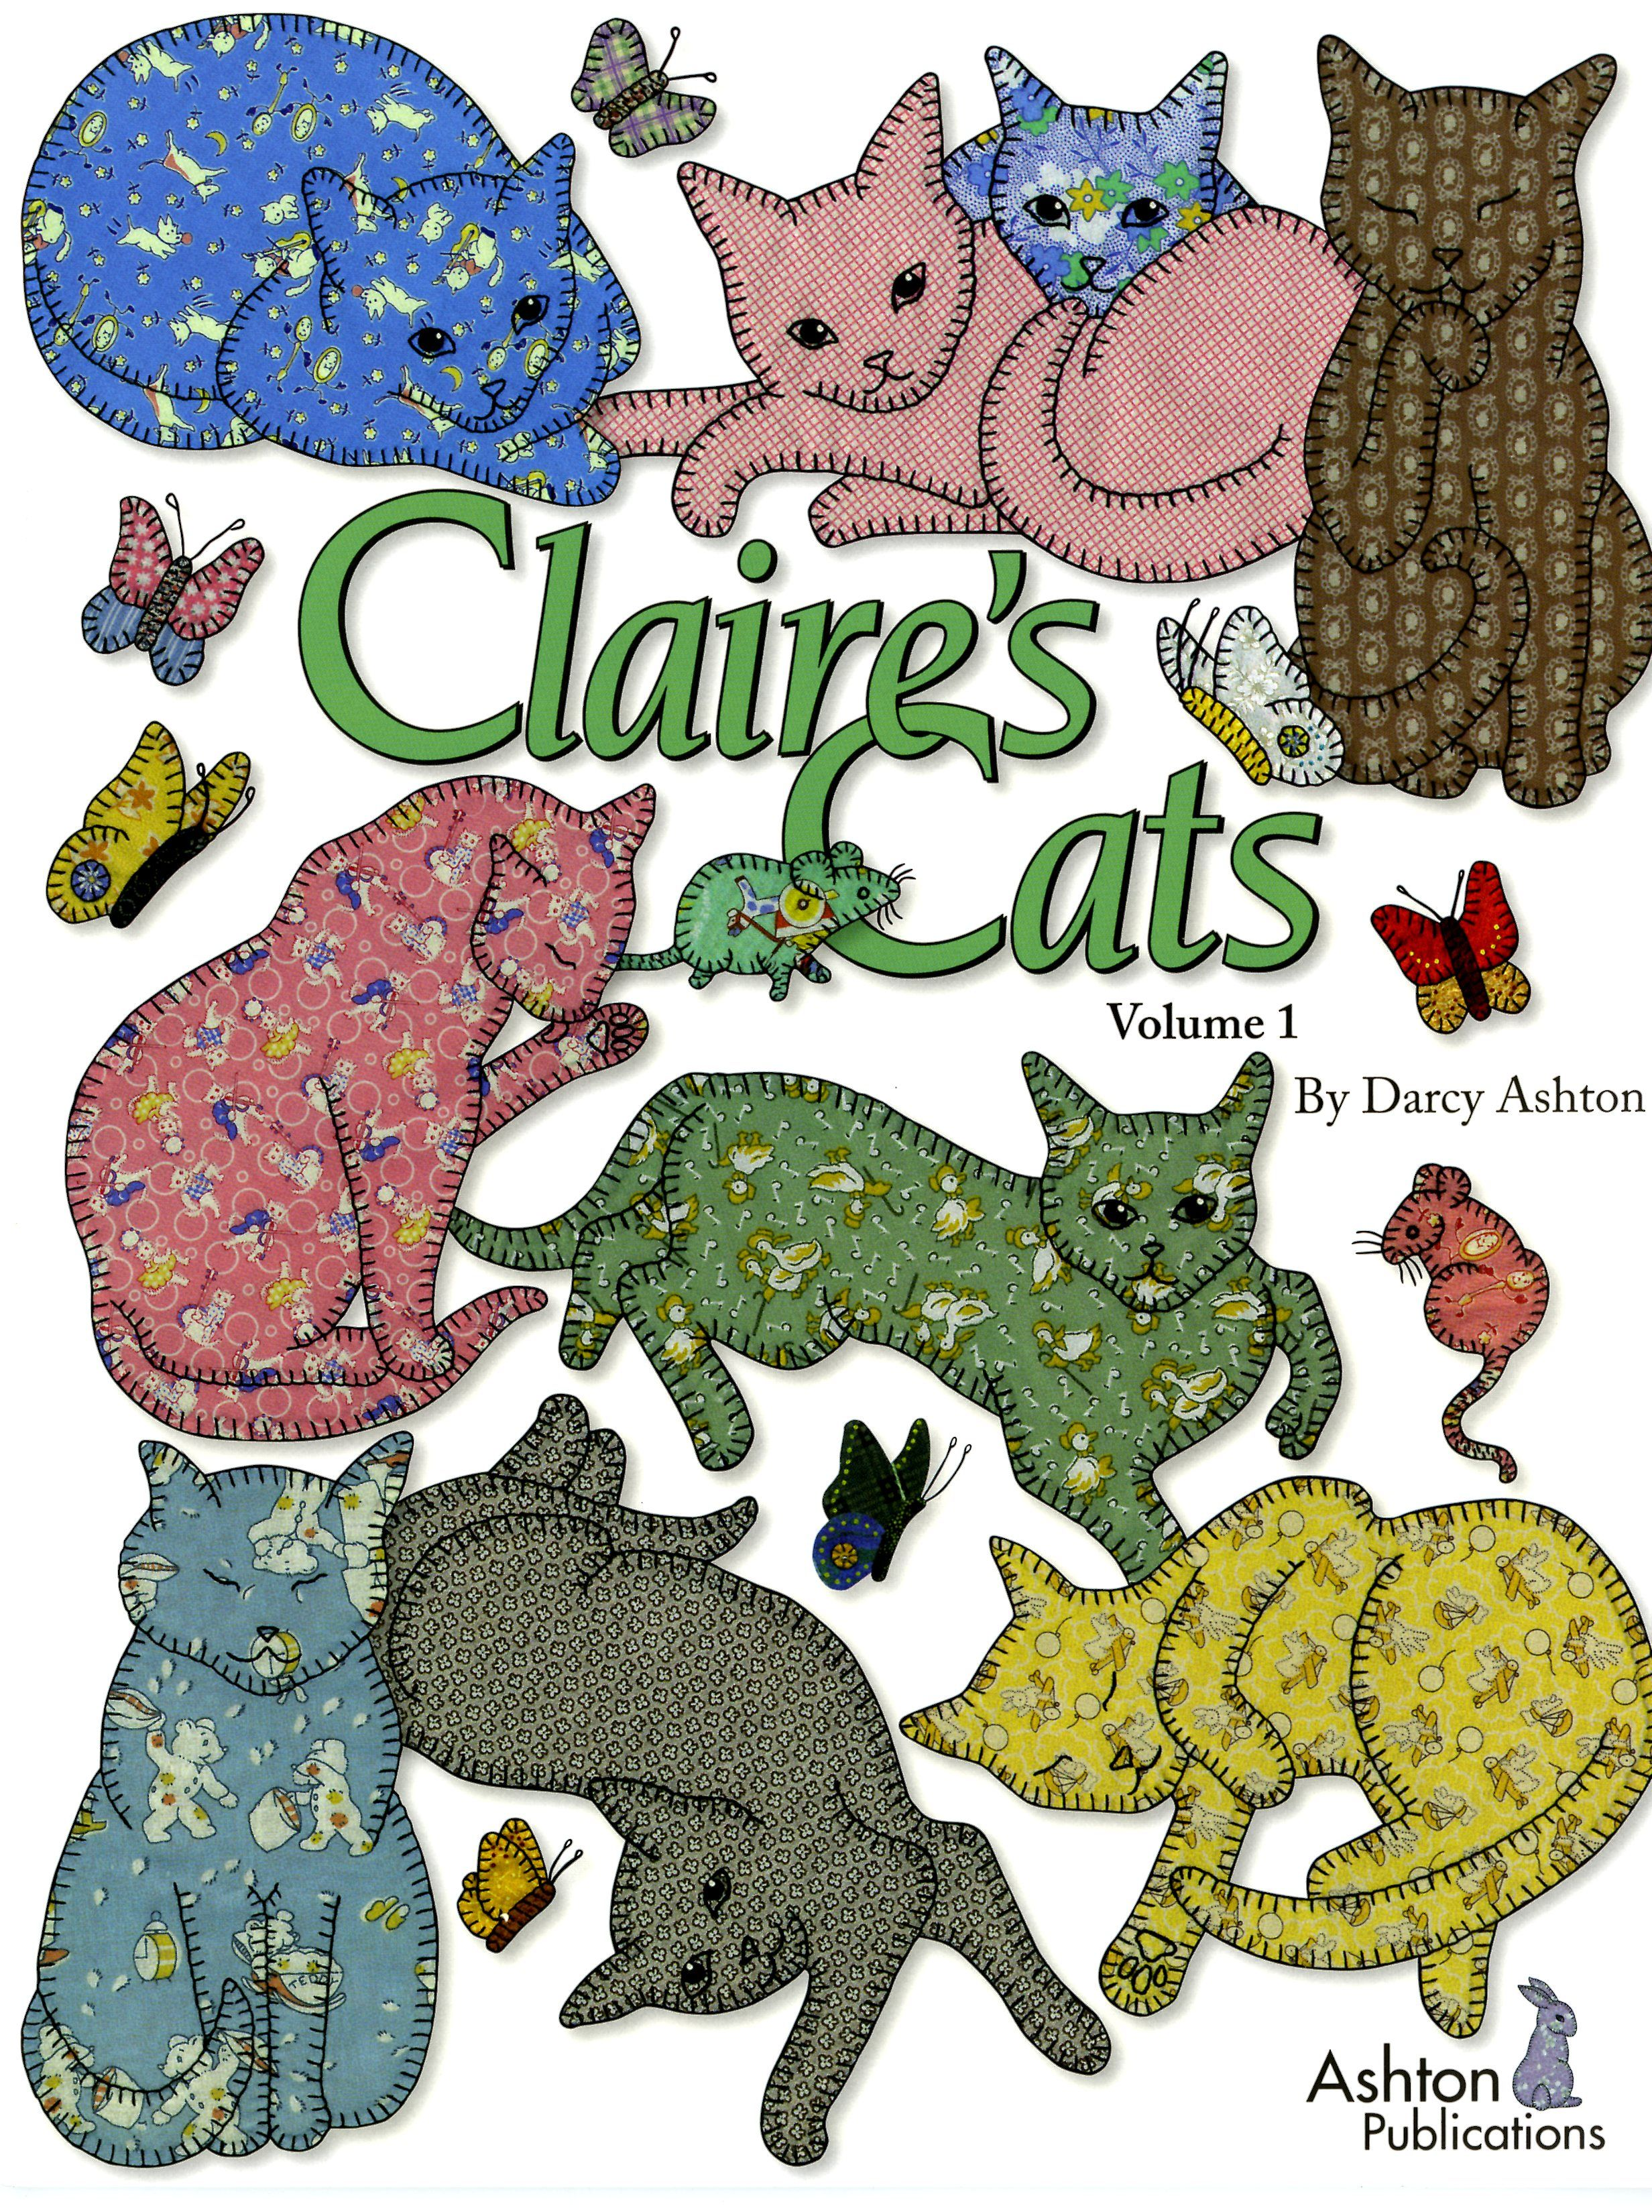 Claire's Cats by Darcy Ashton Volume 1 Fun applique